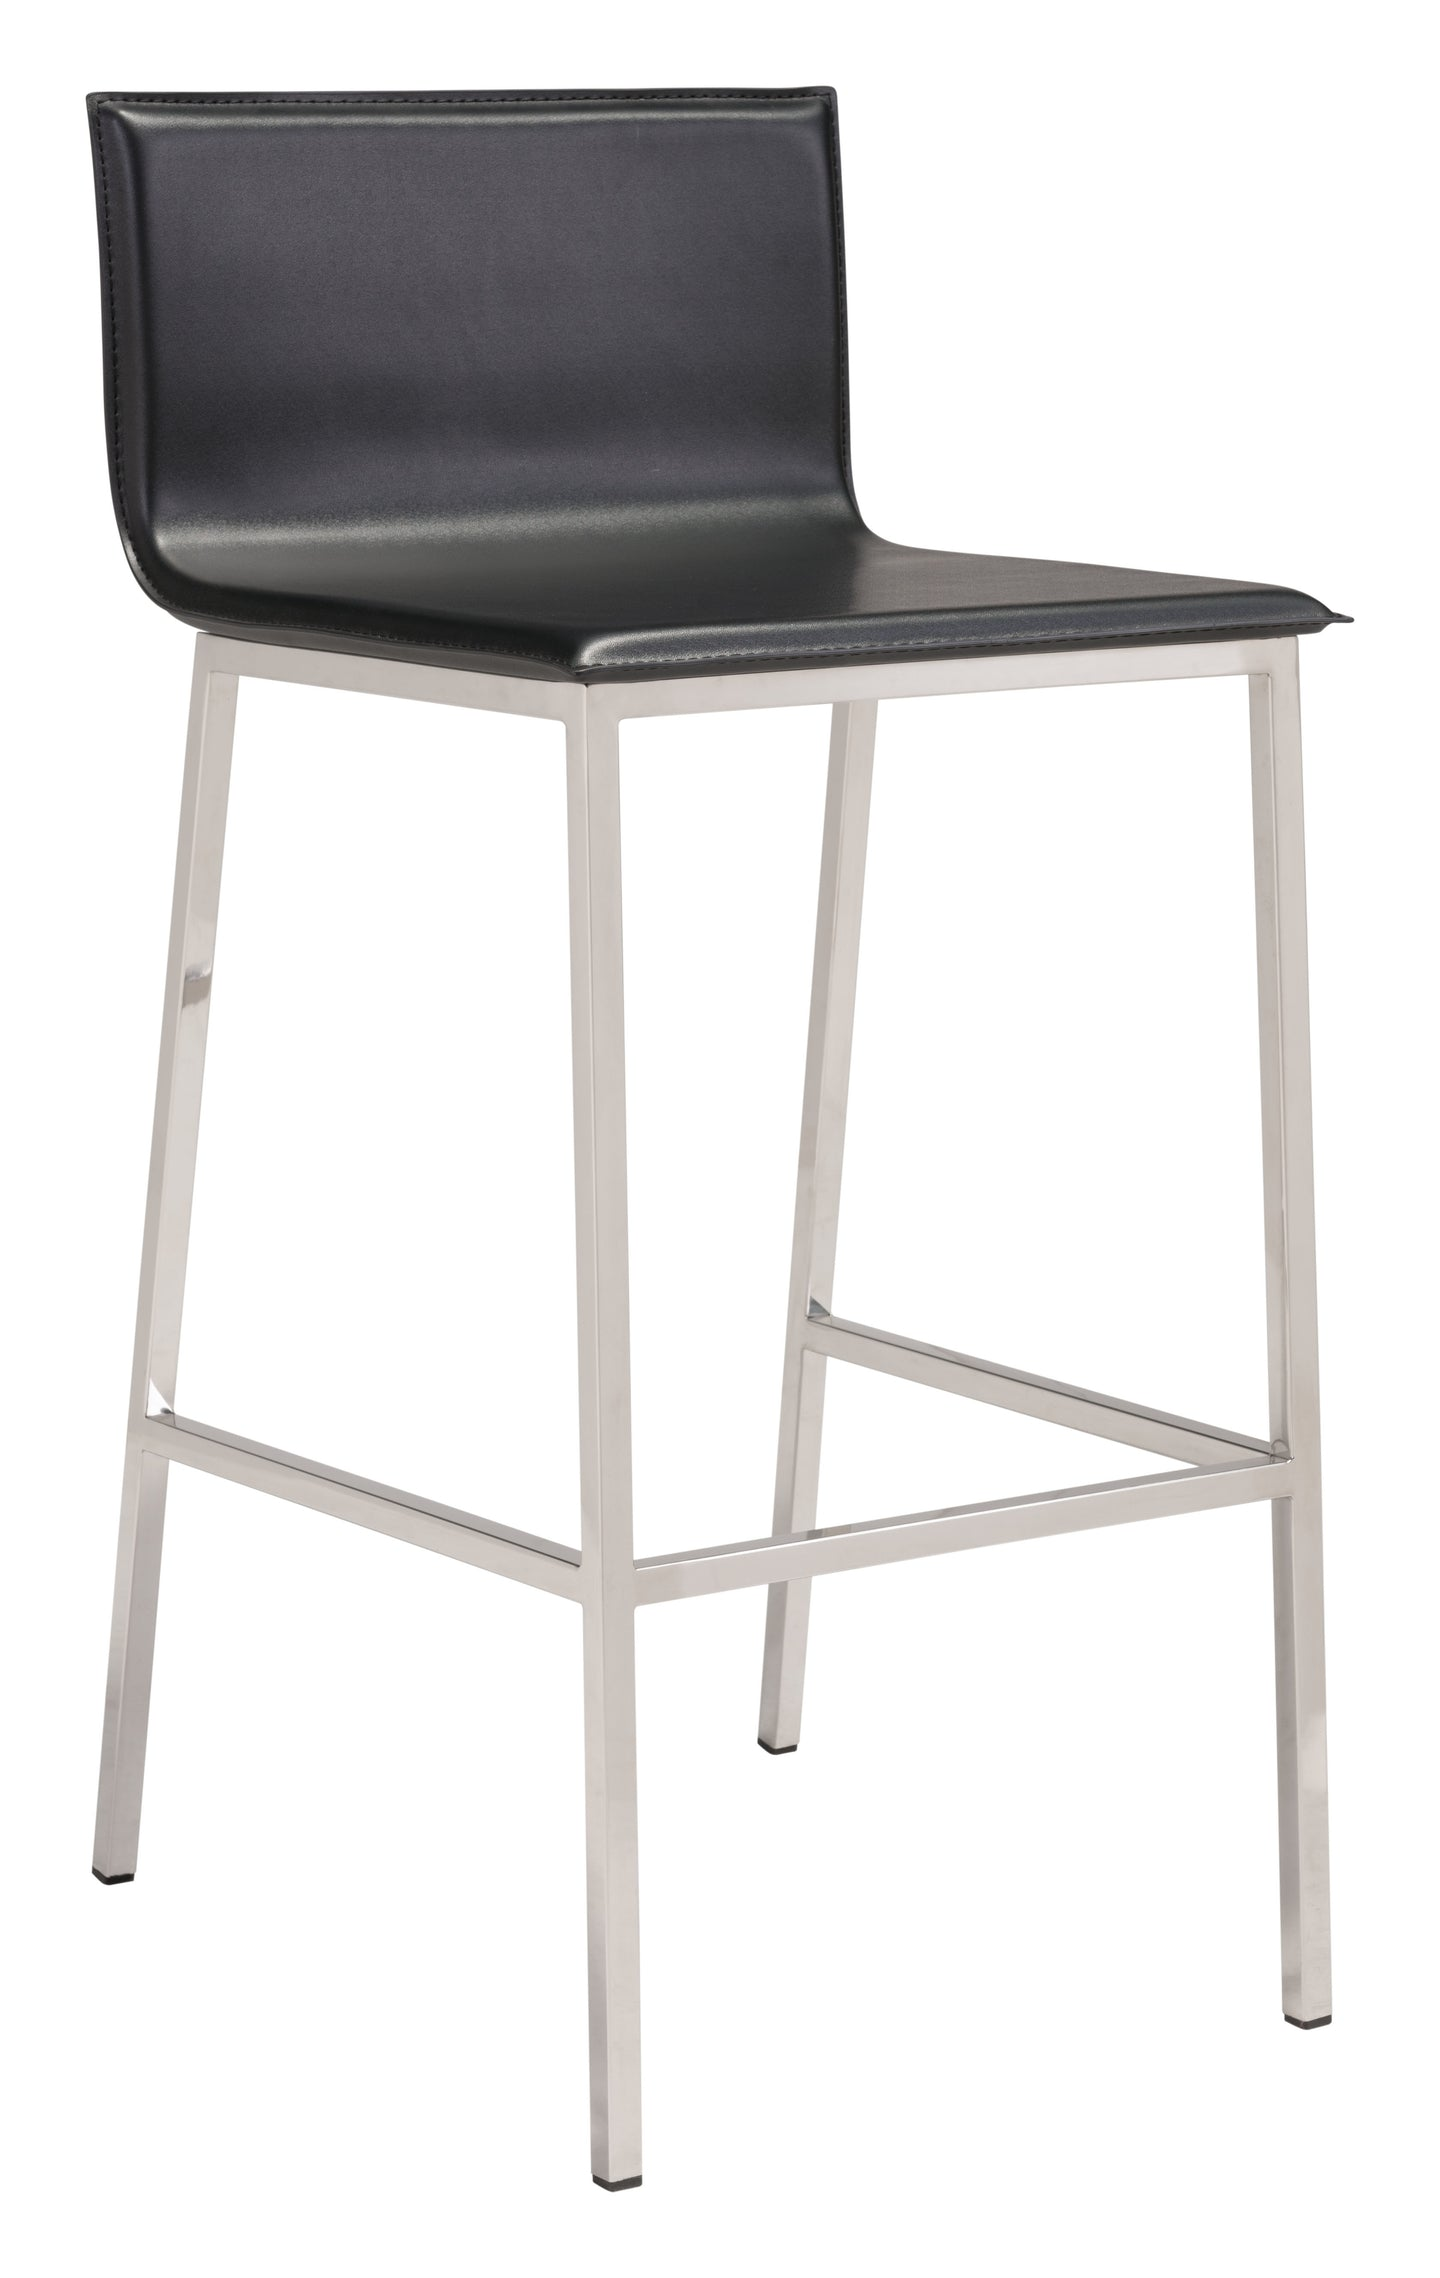 Marina Barstool Black - Bar